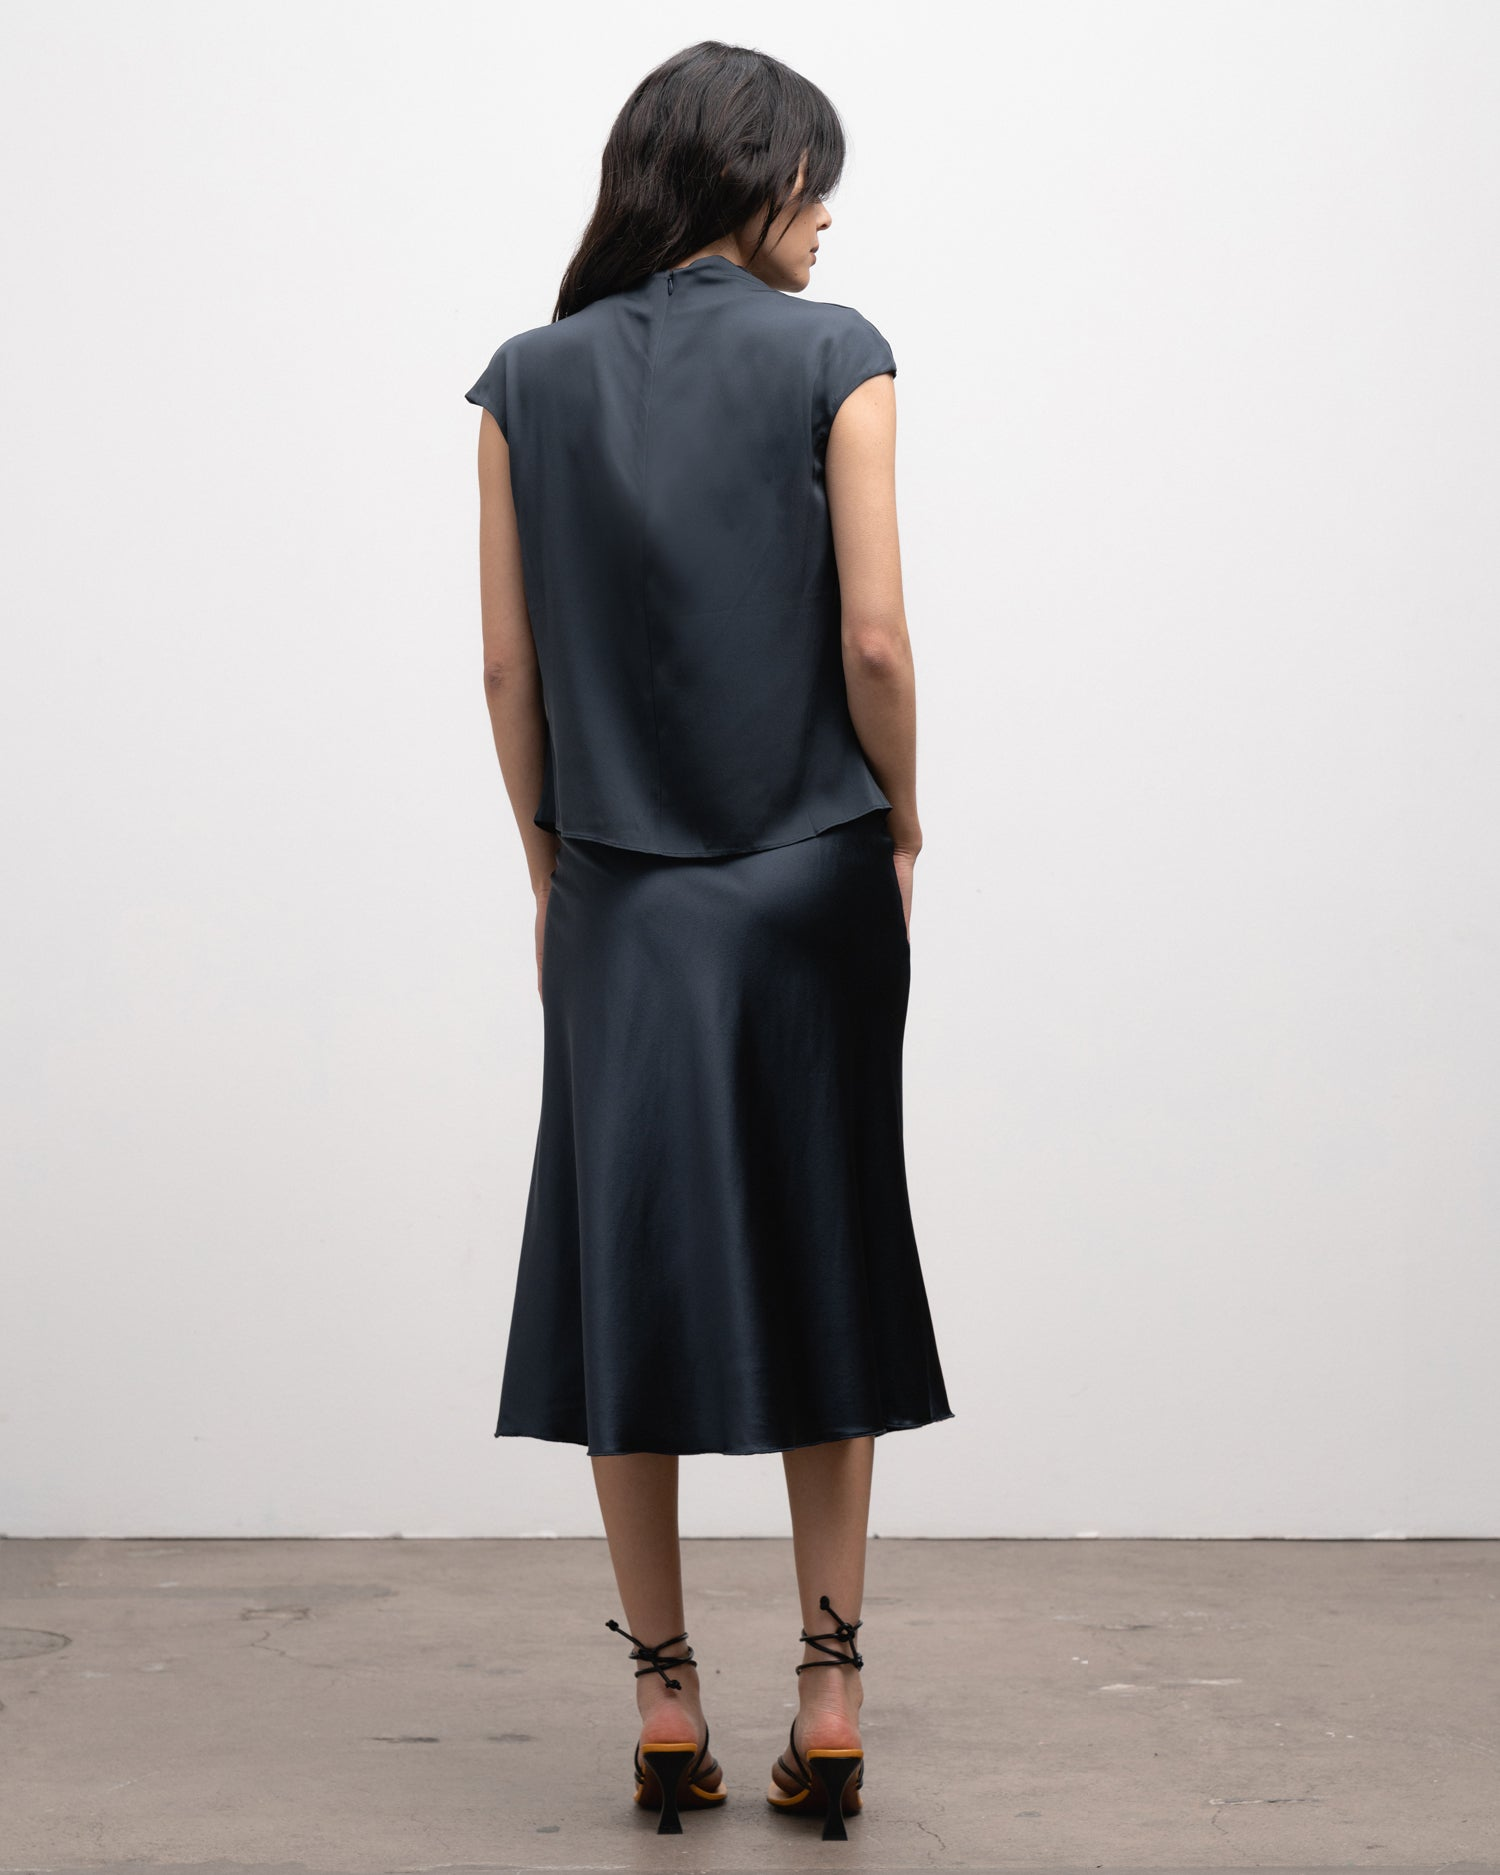 Hana satin skirt blue grey outfit